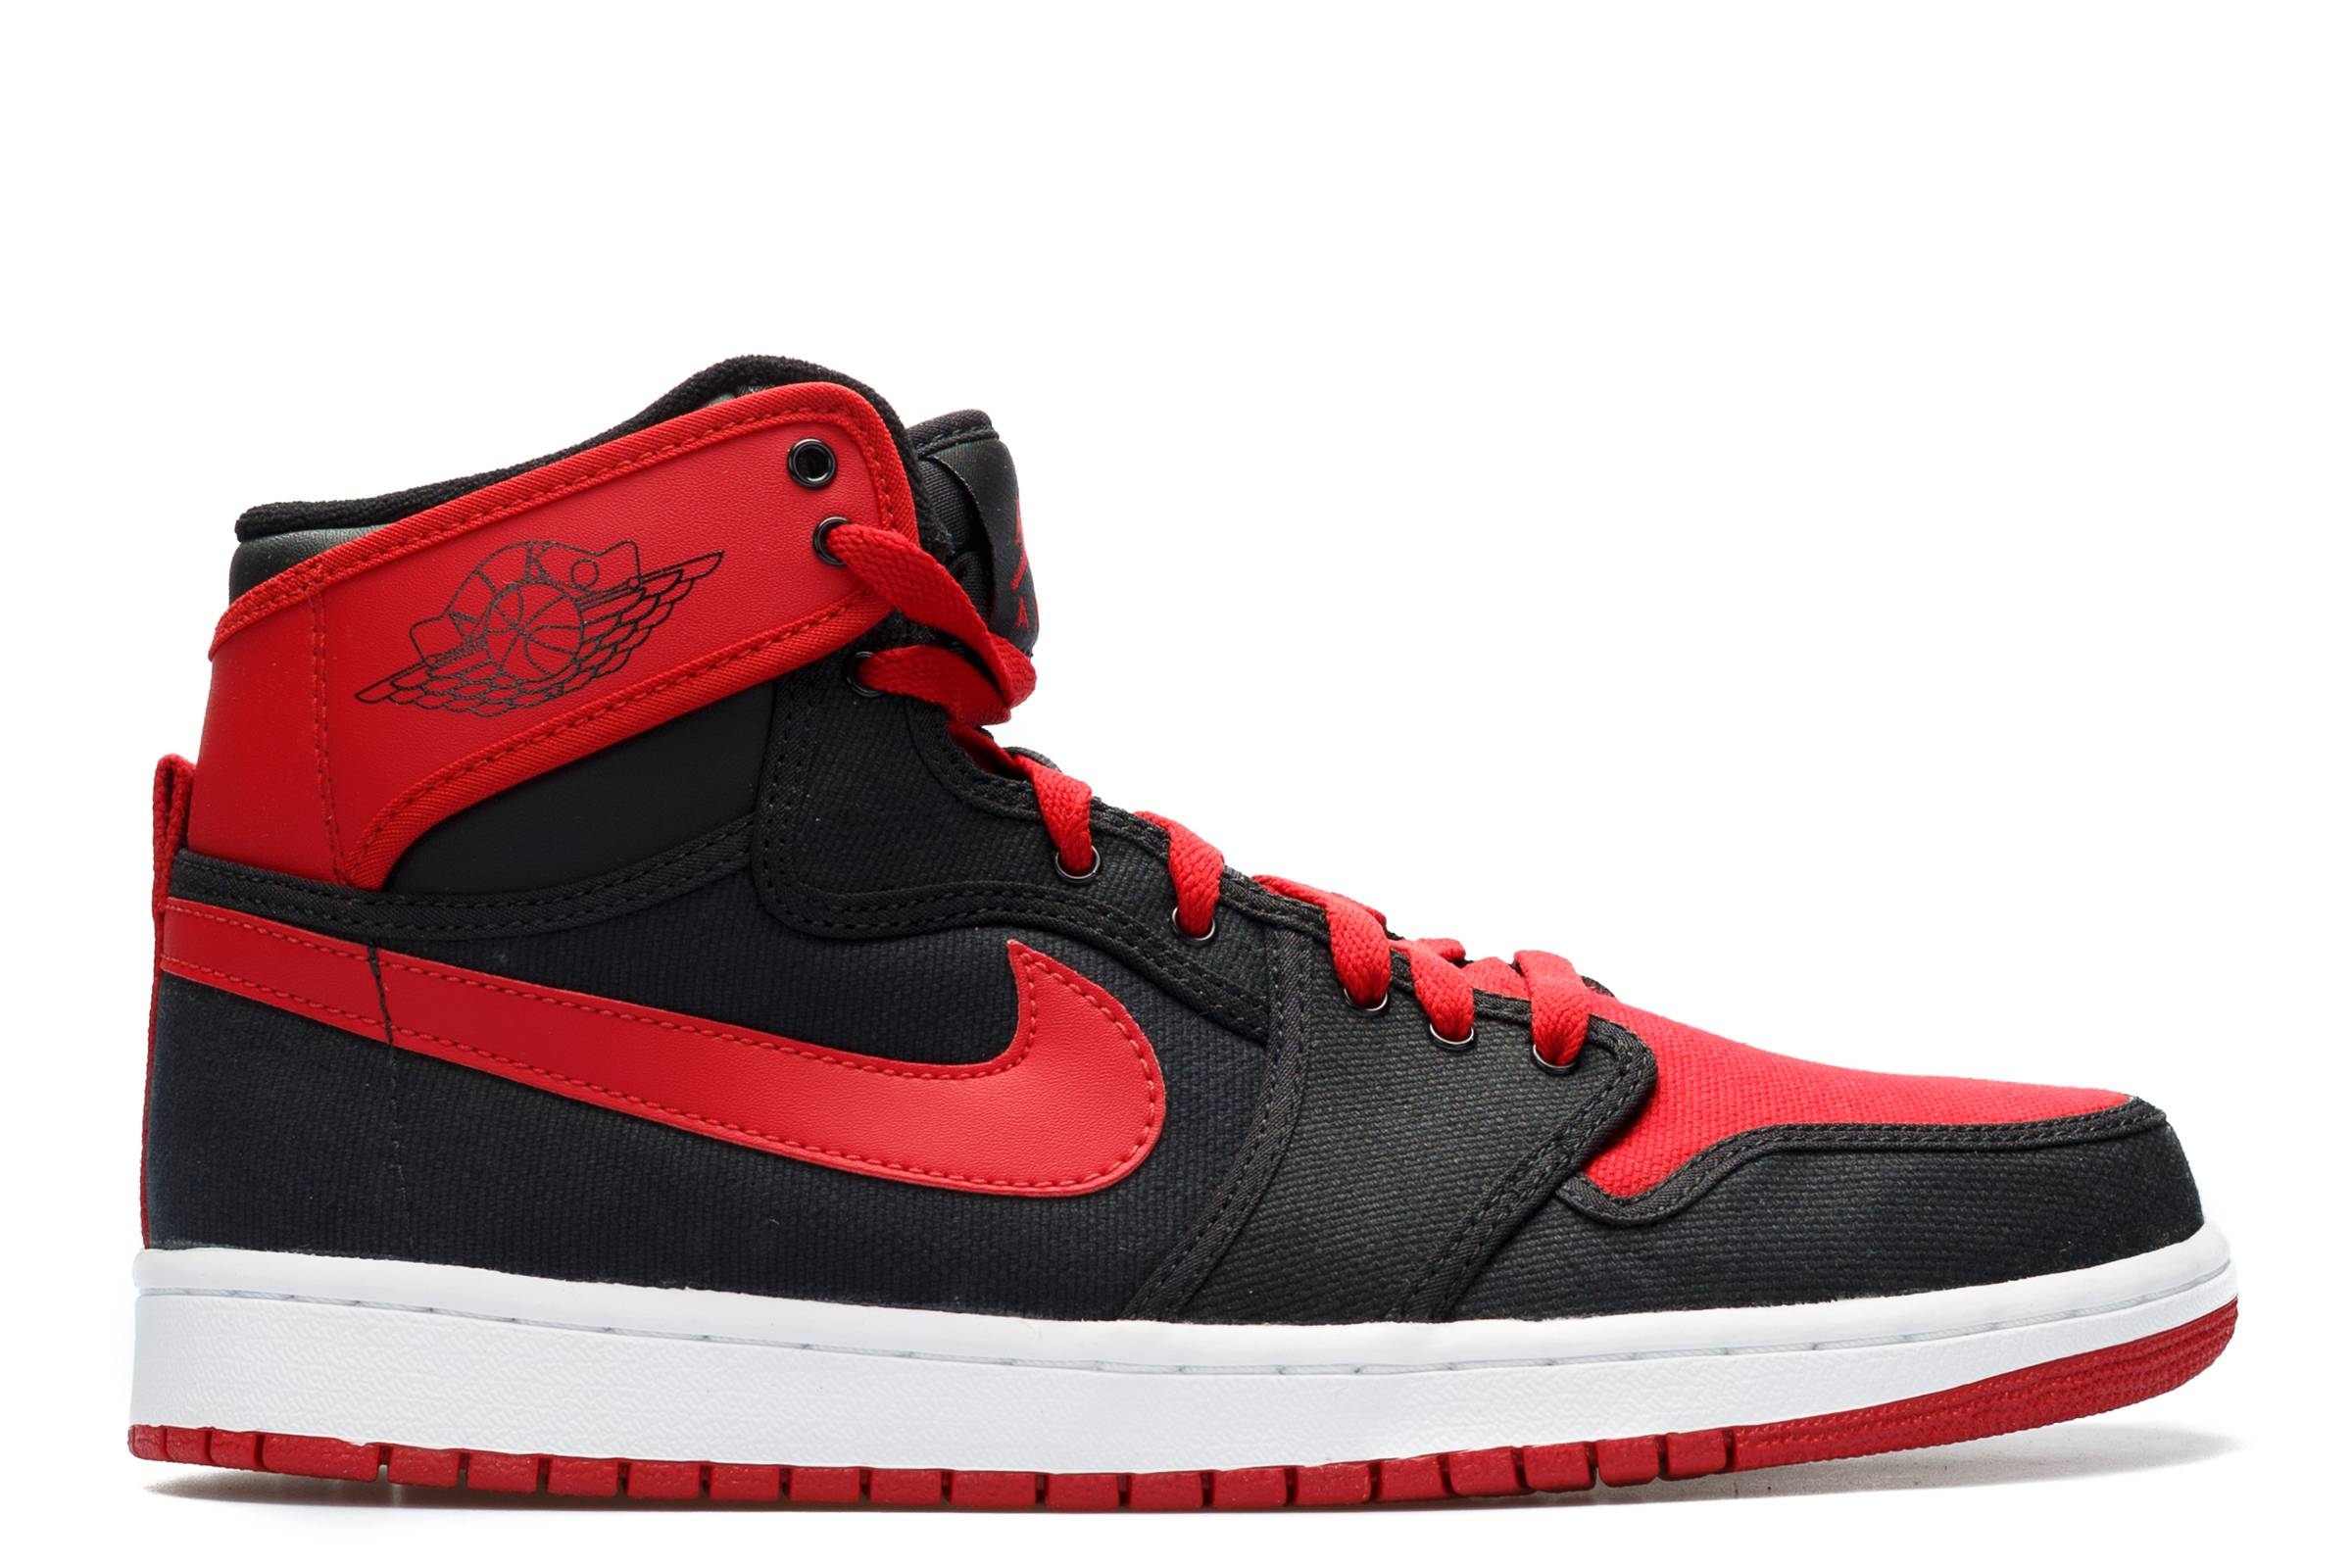 63c2e870662 The One That Started It All  A History of the Jordan 1 - Jordan 1 ...